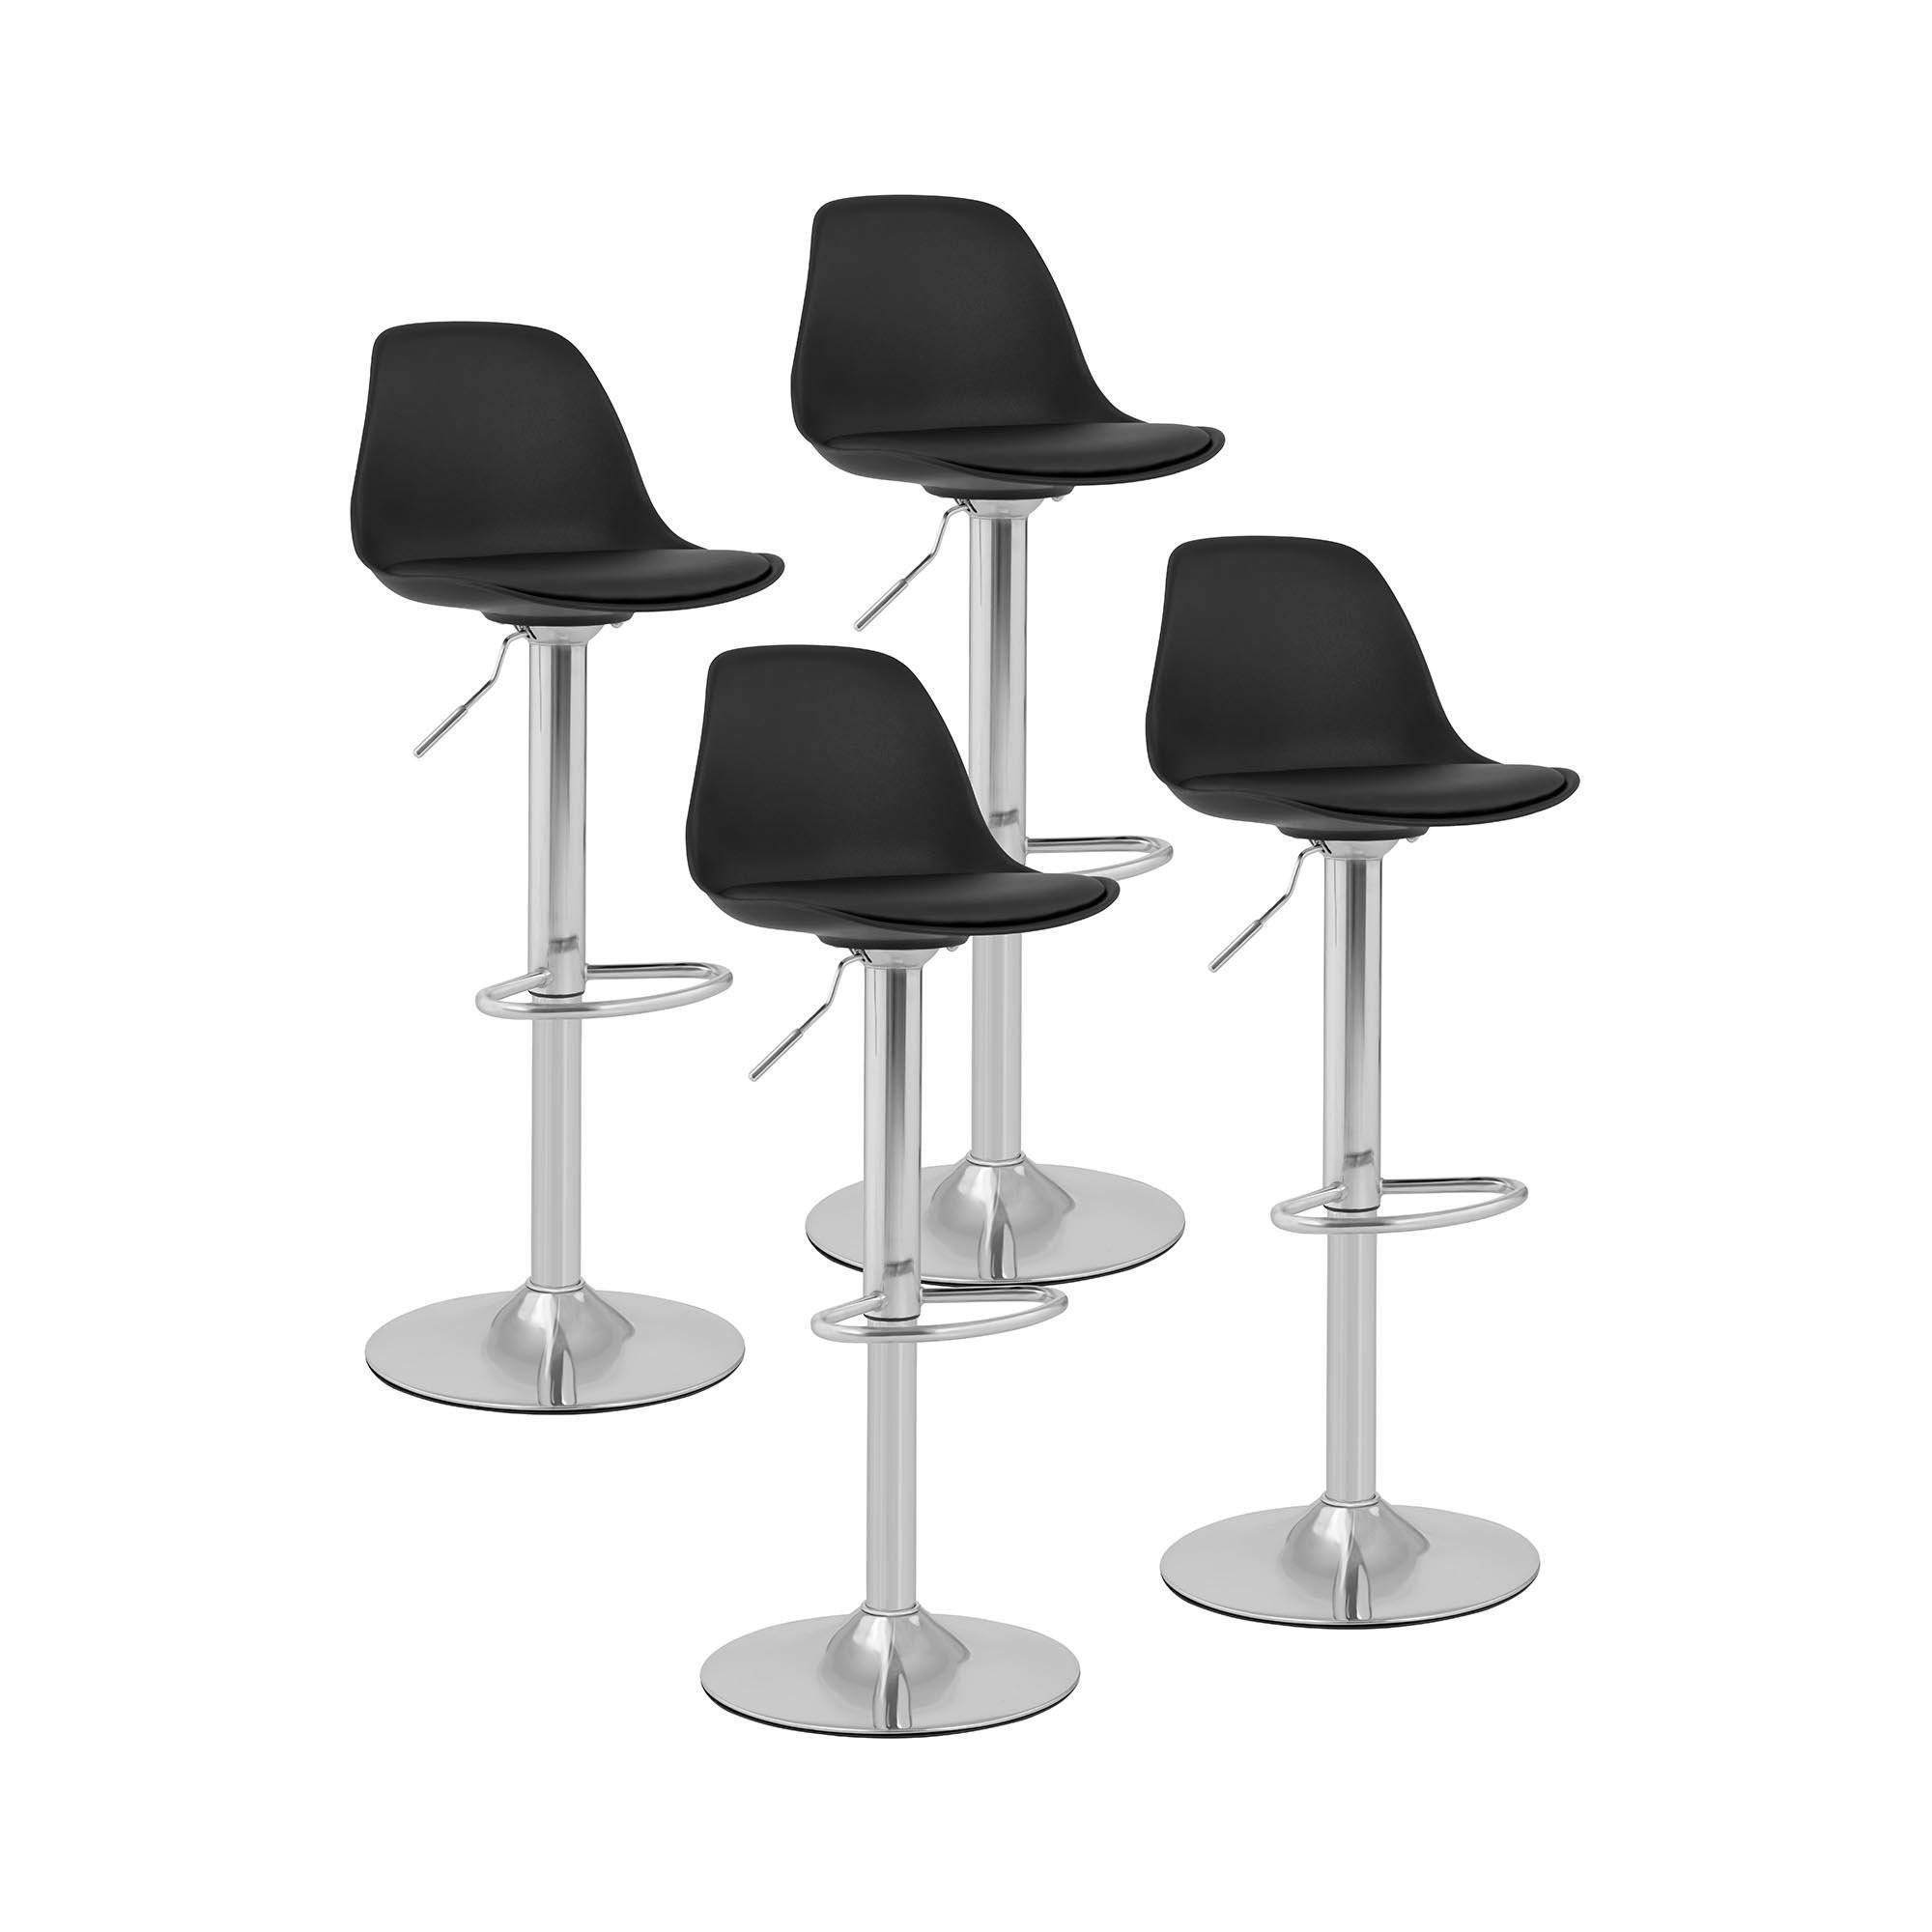 Fromm & Starck Bar Stools - set of 4 - with back - chrome-plated steel base - black STAR_SEAT_02